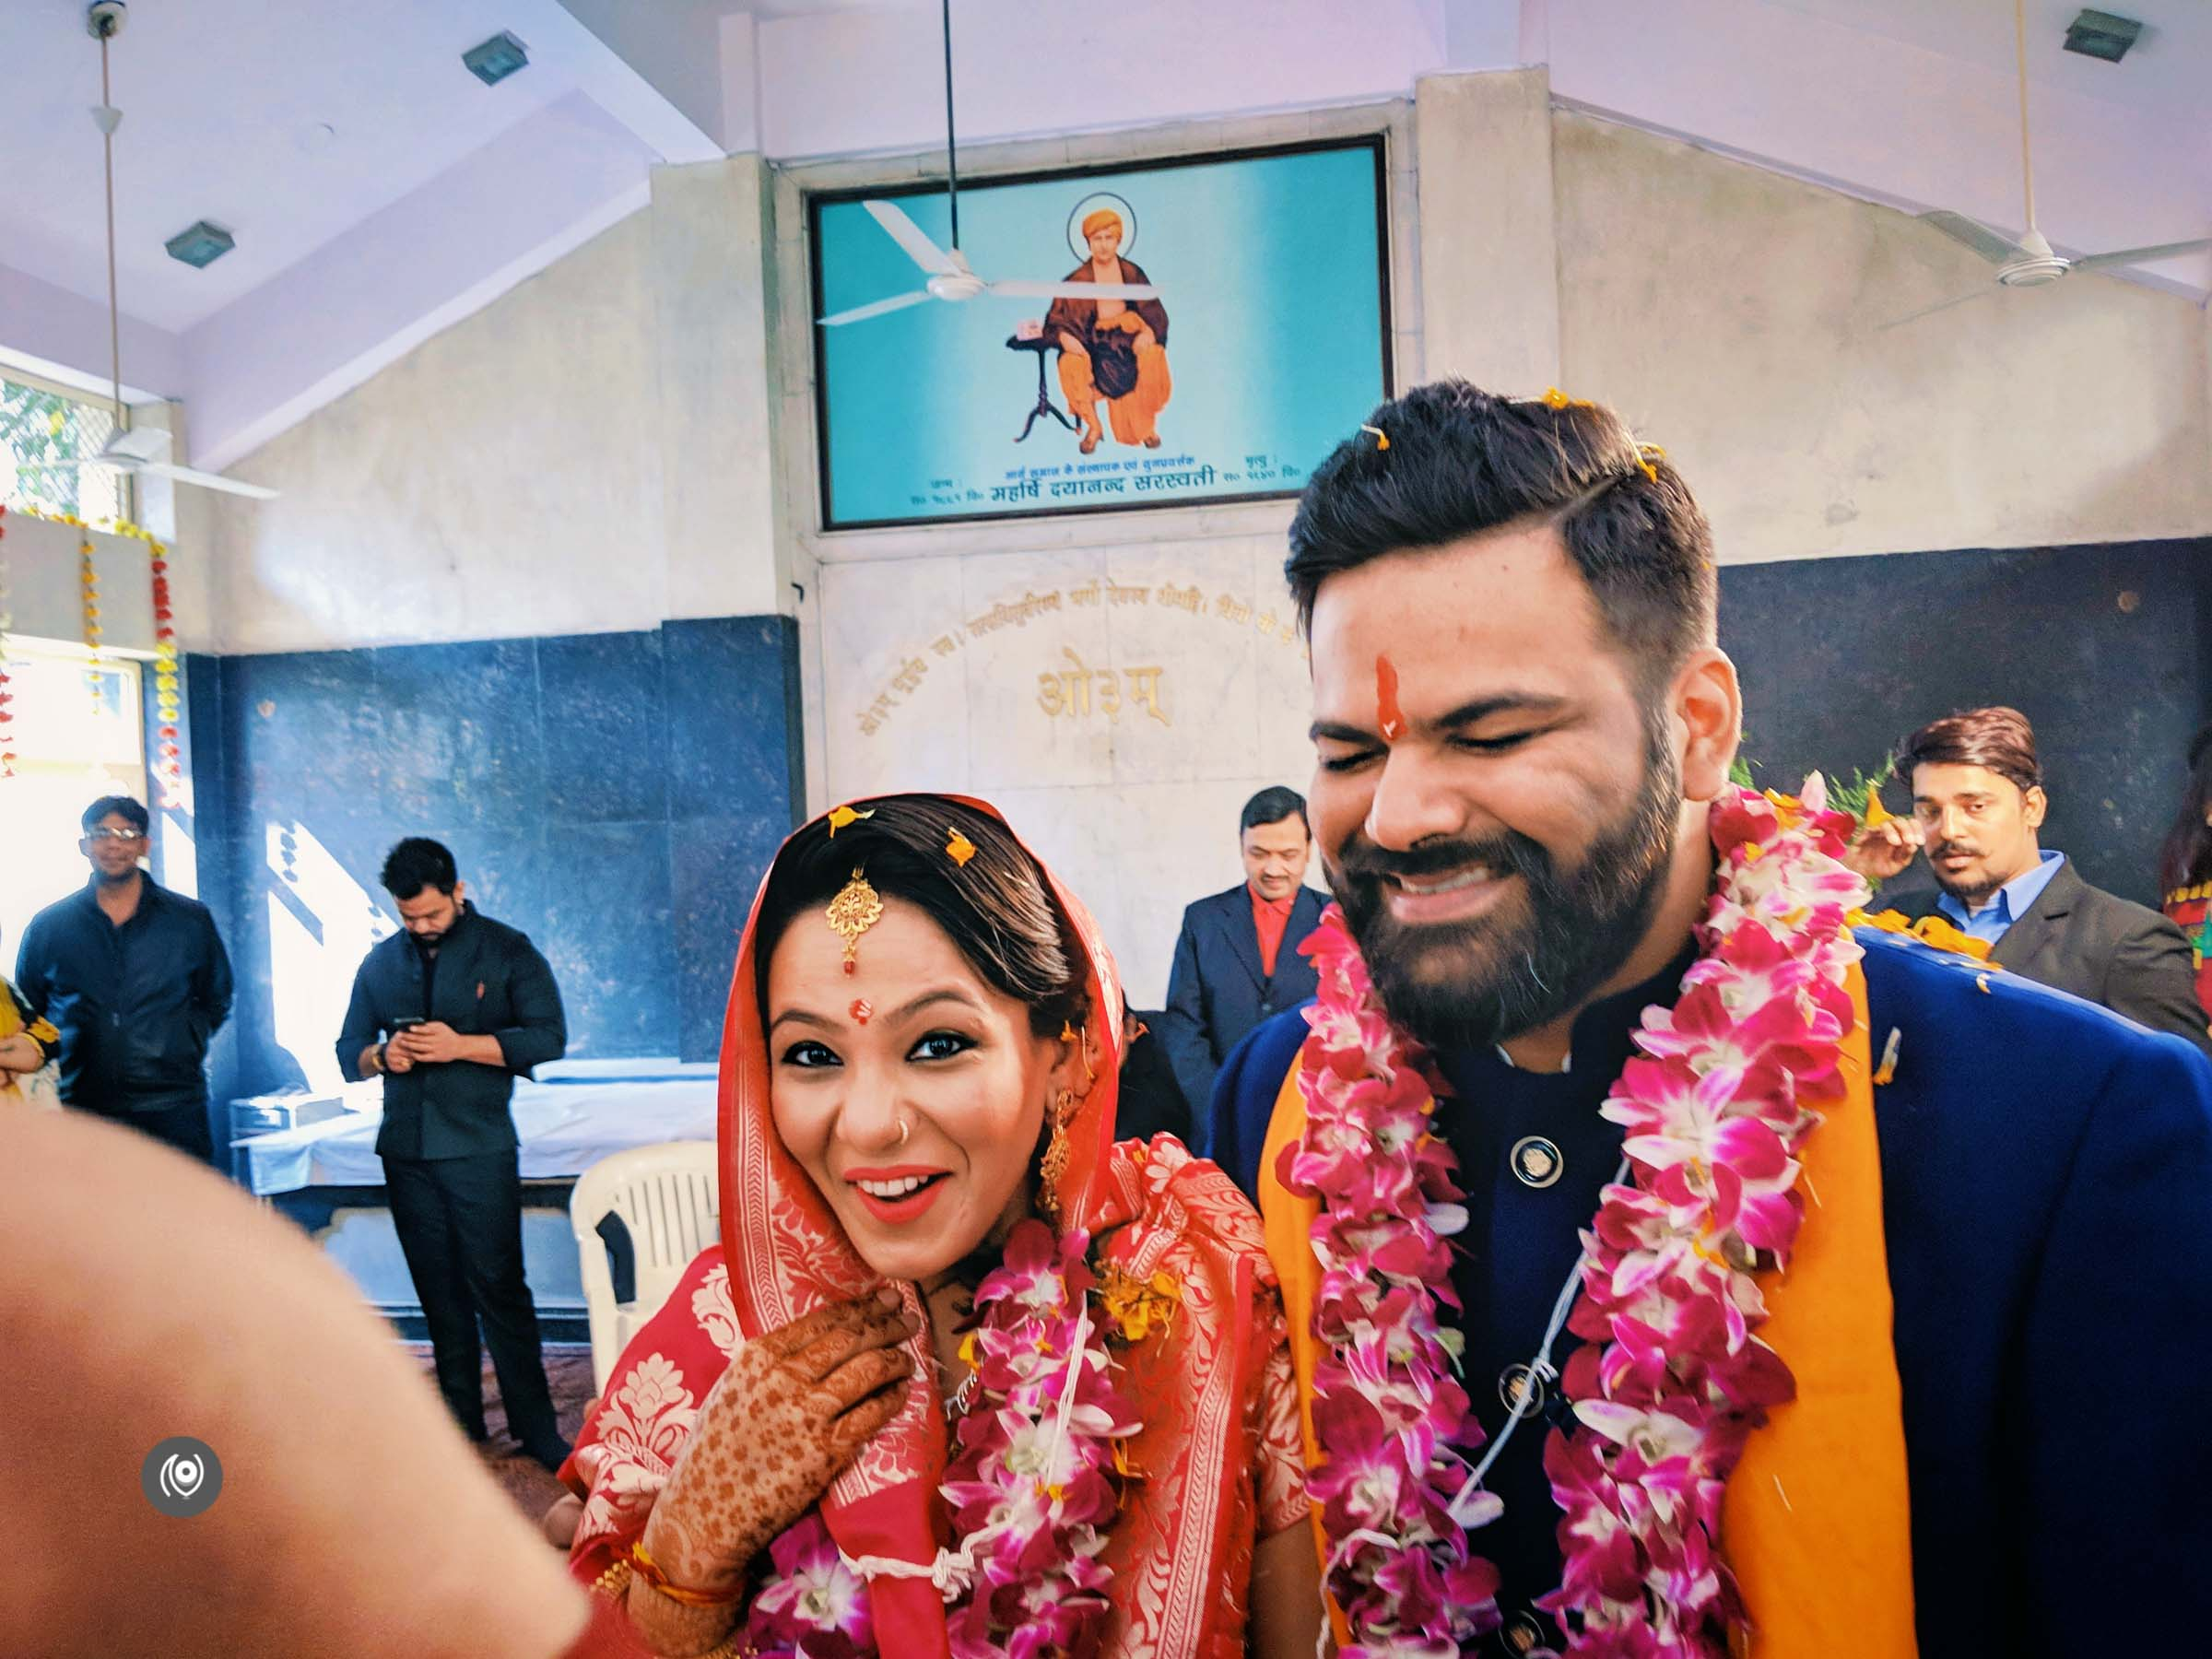 Naina.co, Wedding, Naina Redhu, Wedding Photos, Sandy, Mona, Arya Samaj Wedding, Professional Photographer, Wedding Photographed on a Smartphone, Smartphone wedding photos, Smartphone Wedding Photography, Professional Blogger, Friends Wedding, Wedding Ceremony, December 2017, 2017 Wedding, Simple Wedding, Friends